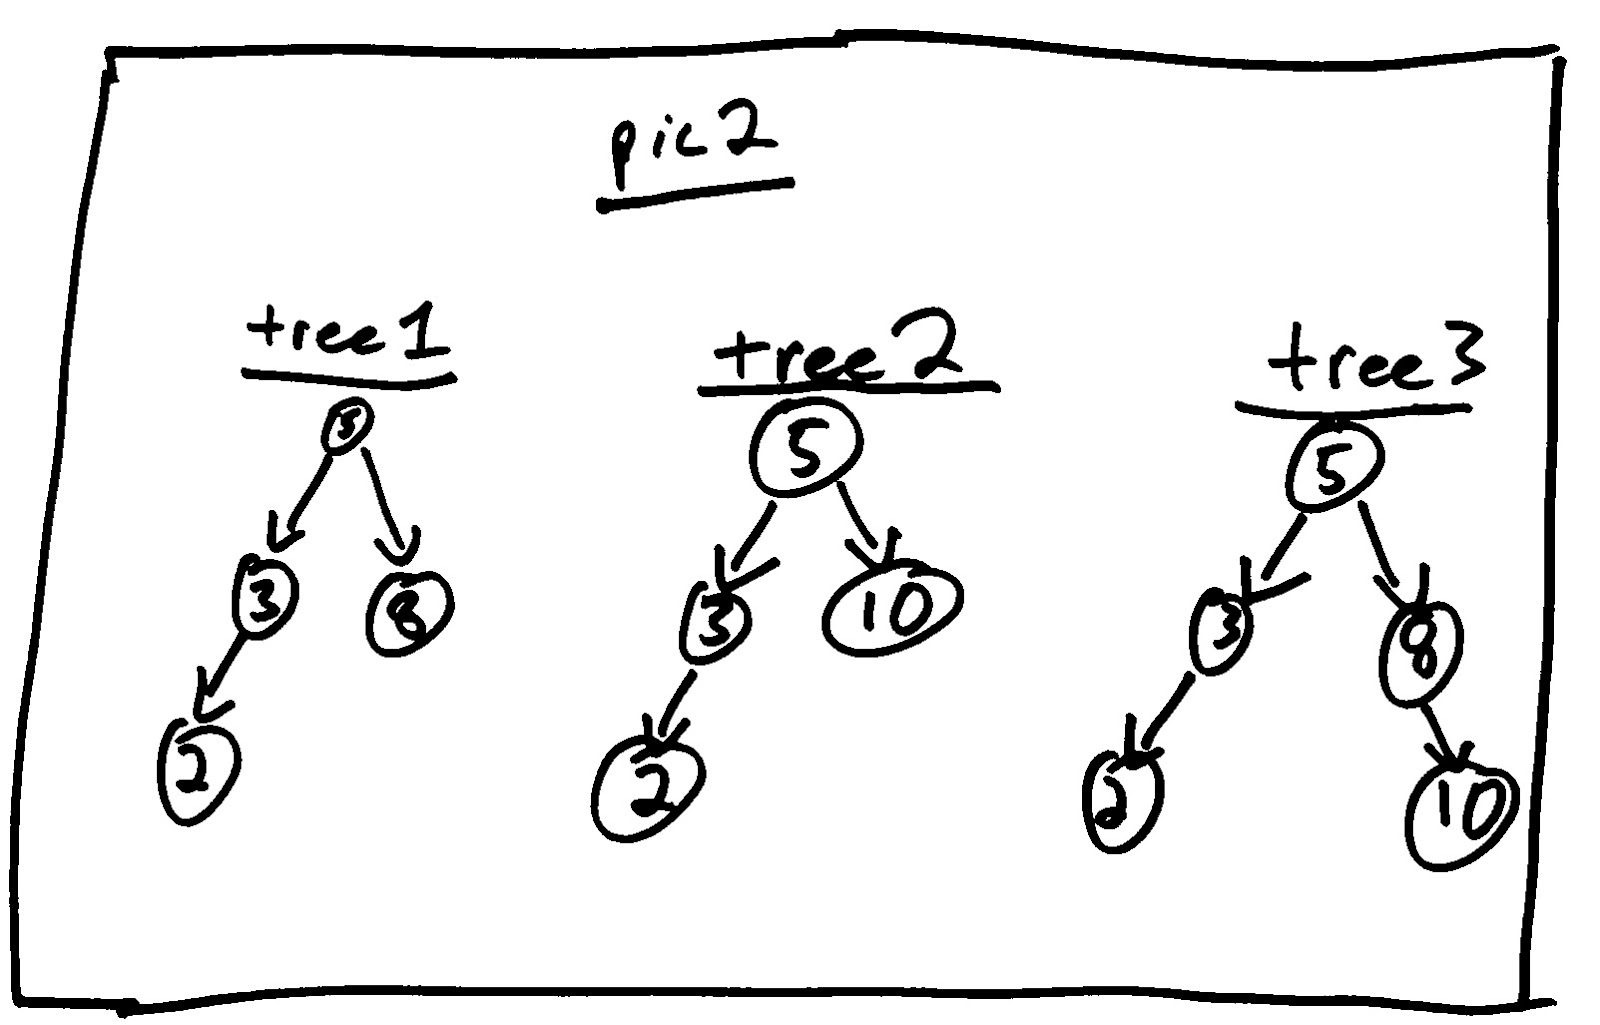 codewod pare two binary trees Binary Code now let s think about how trees could be different by drawing out a few more trees as in pic 2 here we have three trees that are all different